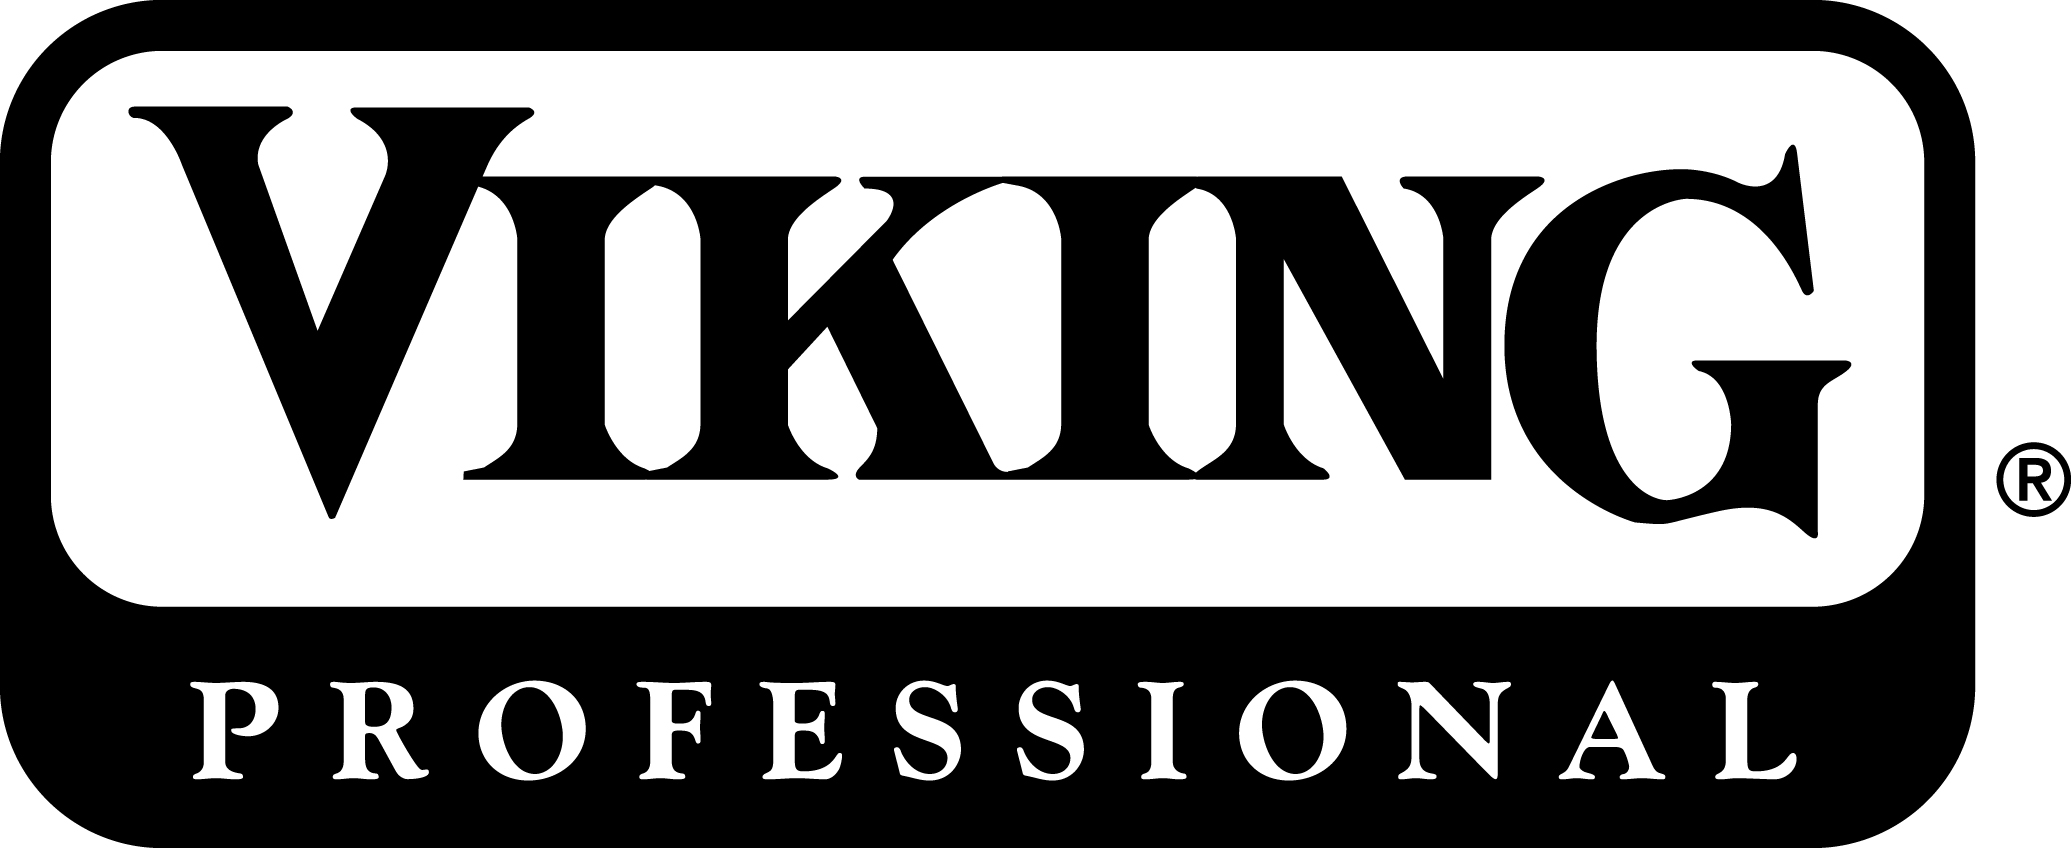 Viking Oven Fix Service, Kenmore Oven Repair